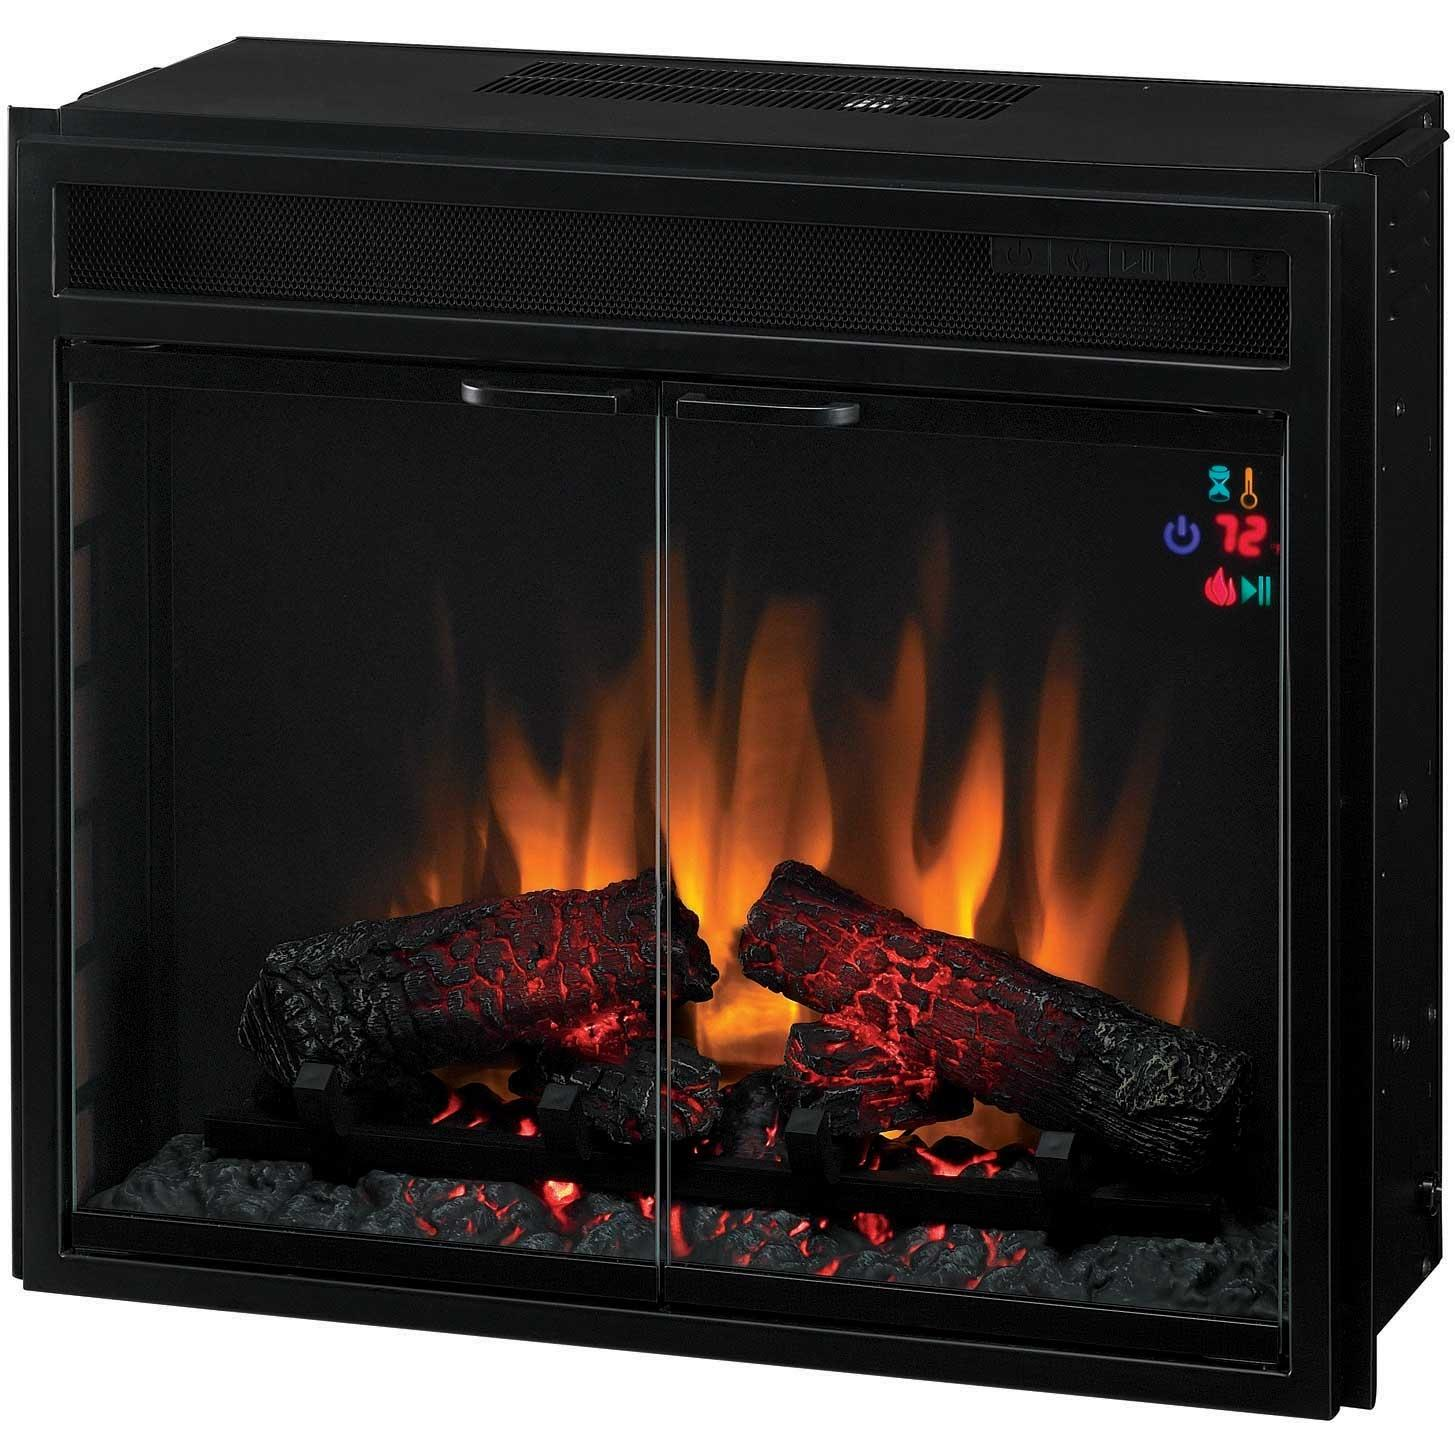 ClassicFlame 23EF025GRA 23 Inch Electric Fireplace Insert With Doors And Remote - Black